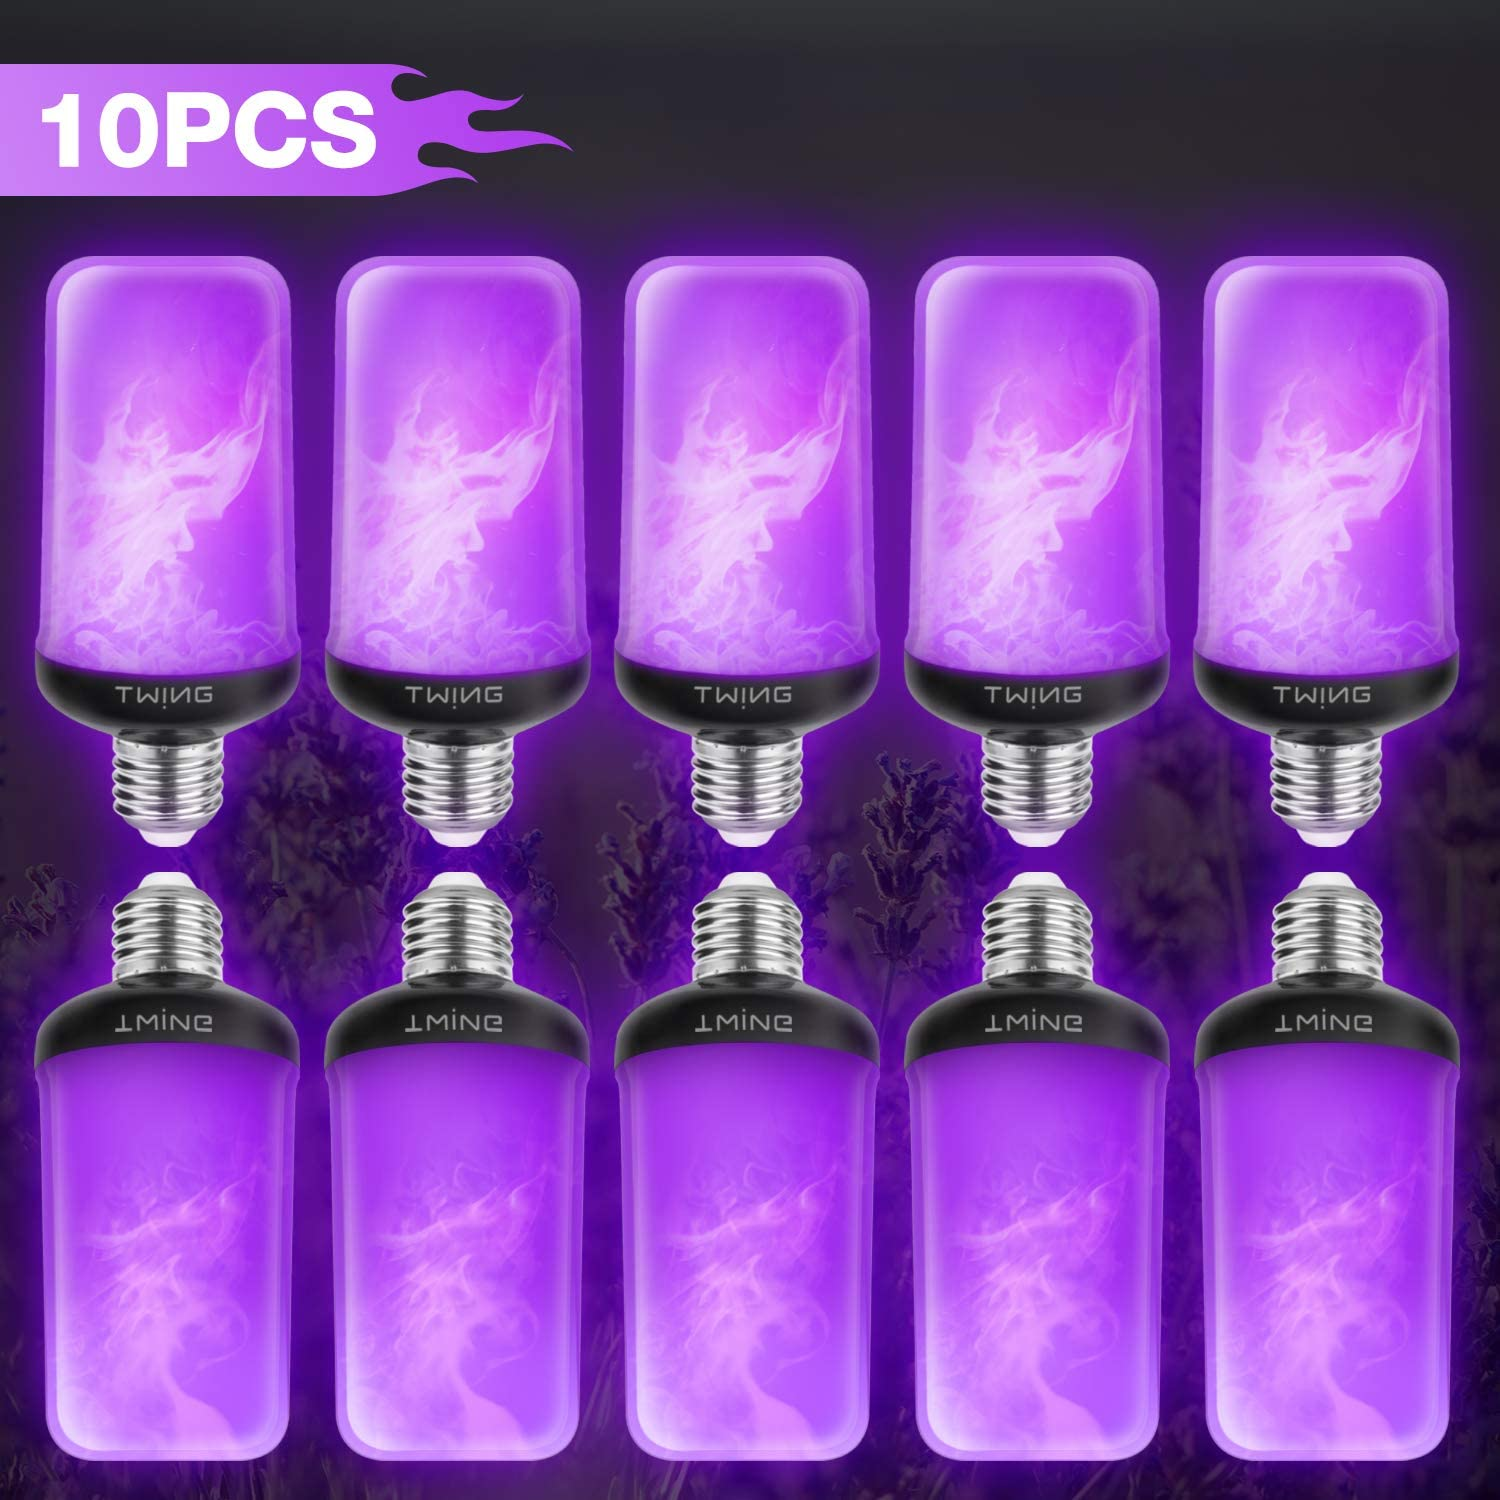 LED Flame Bulb Purple Fire Bulbs(10 Pack) 6W 99 LED 4 Modes E26/E27 Base Flickering Fire Light Bulbs with Gravity Sensor Energy Fire Lights for Halloween Christmas Indoor Outdoor Decorations